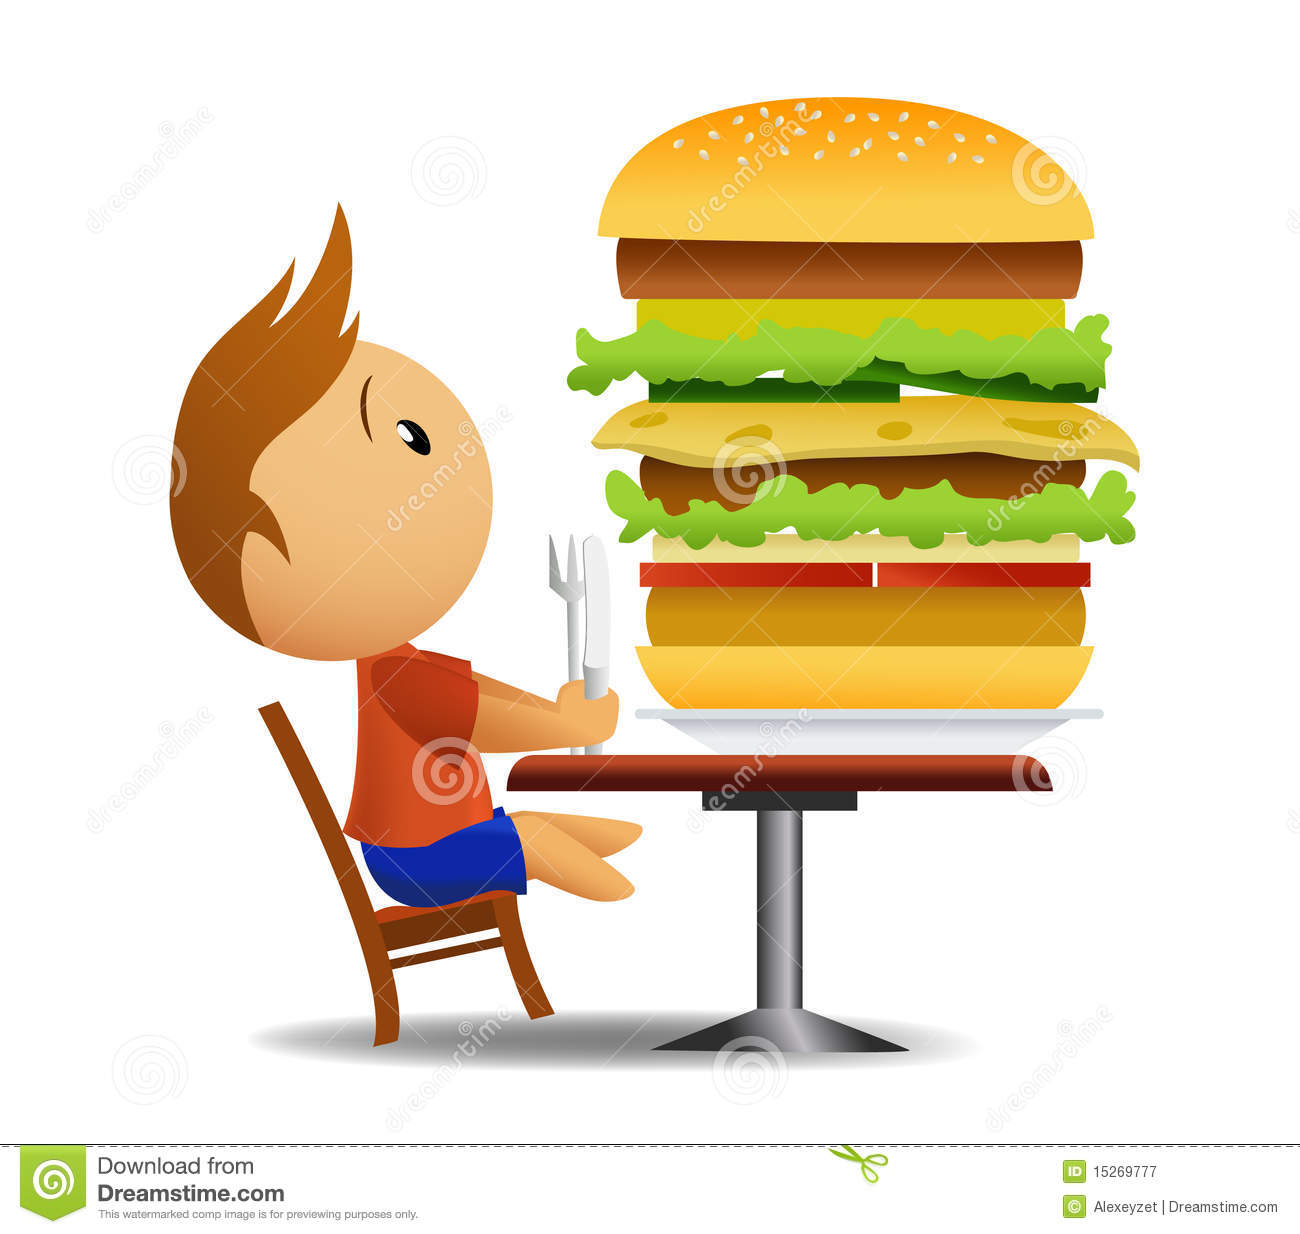 Cartoon hamburger fast food cartoon fast food cartoon cartoon pictures - Men Going To Eat Very Big Hamburger Stock Vector Image